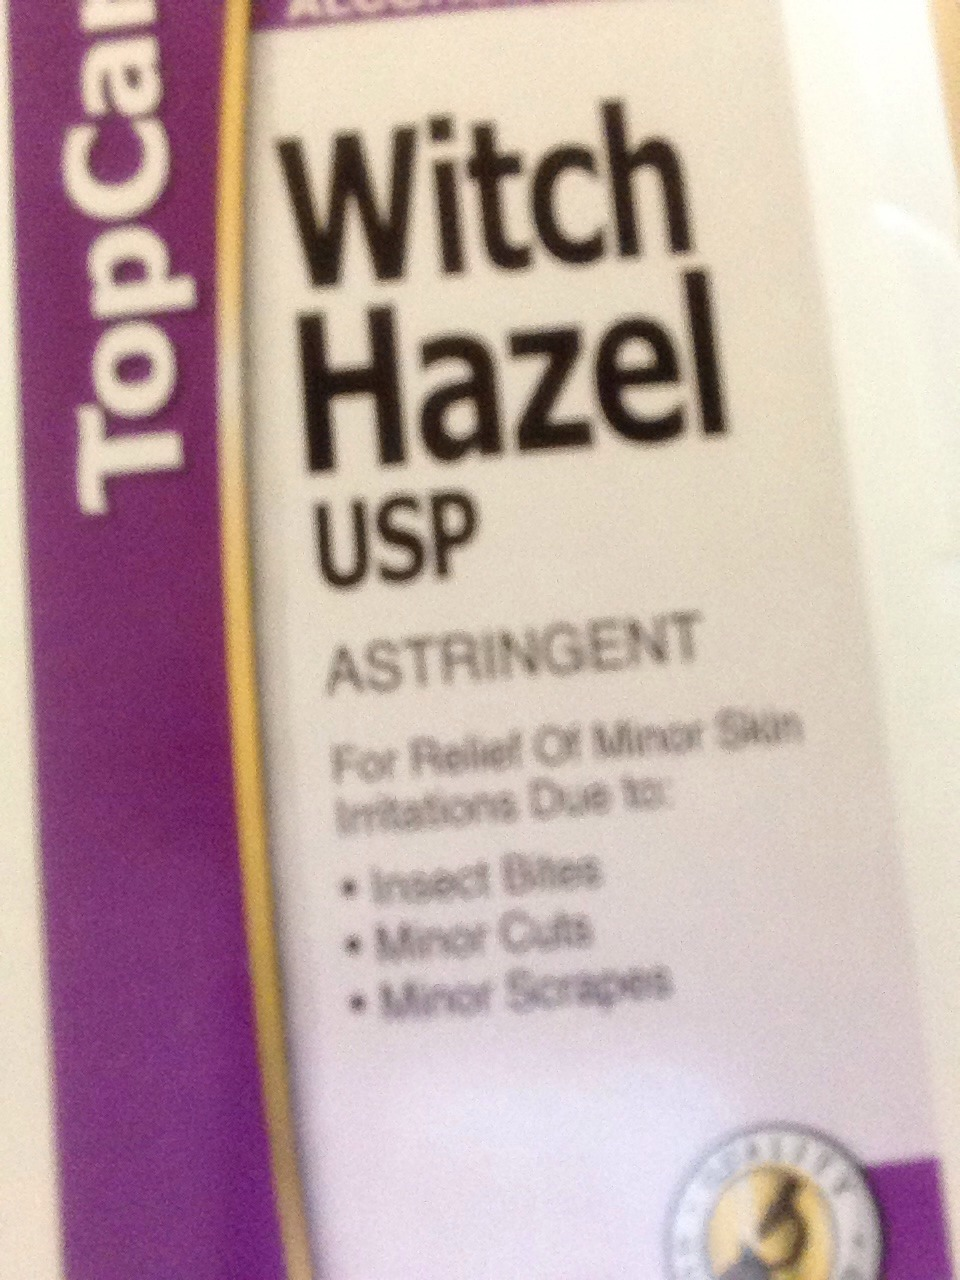 I use Witch Hazel as my astringent. I pot a little bit on a cotton round and rub all over my face and it absorbs all of my oil. I use morning and night before my moisturizer but if it dries your skin out too much limit to once a day.